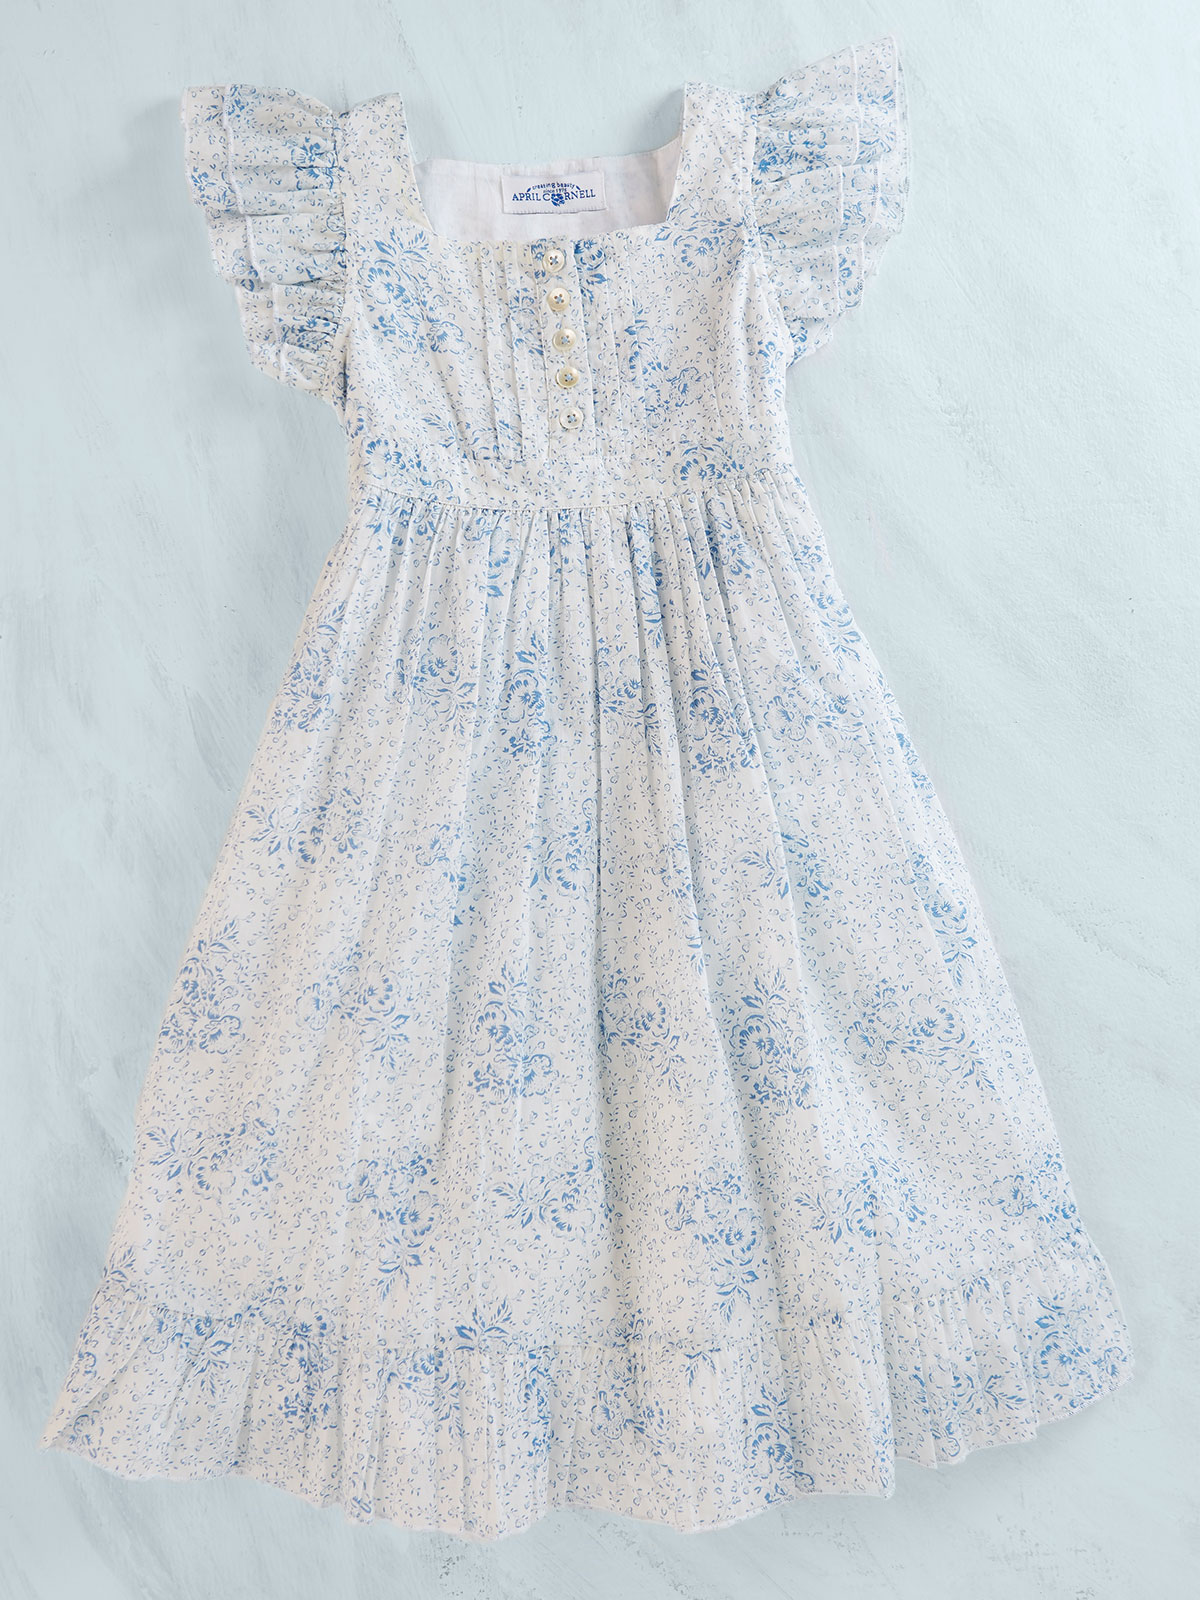 Poetry Girls Dress